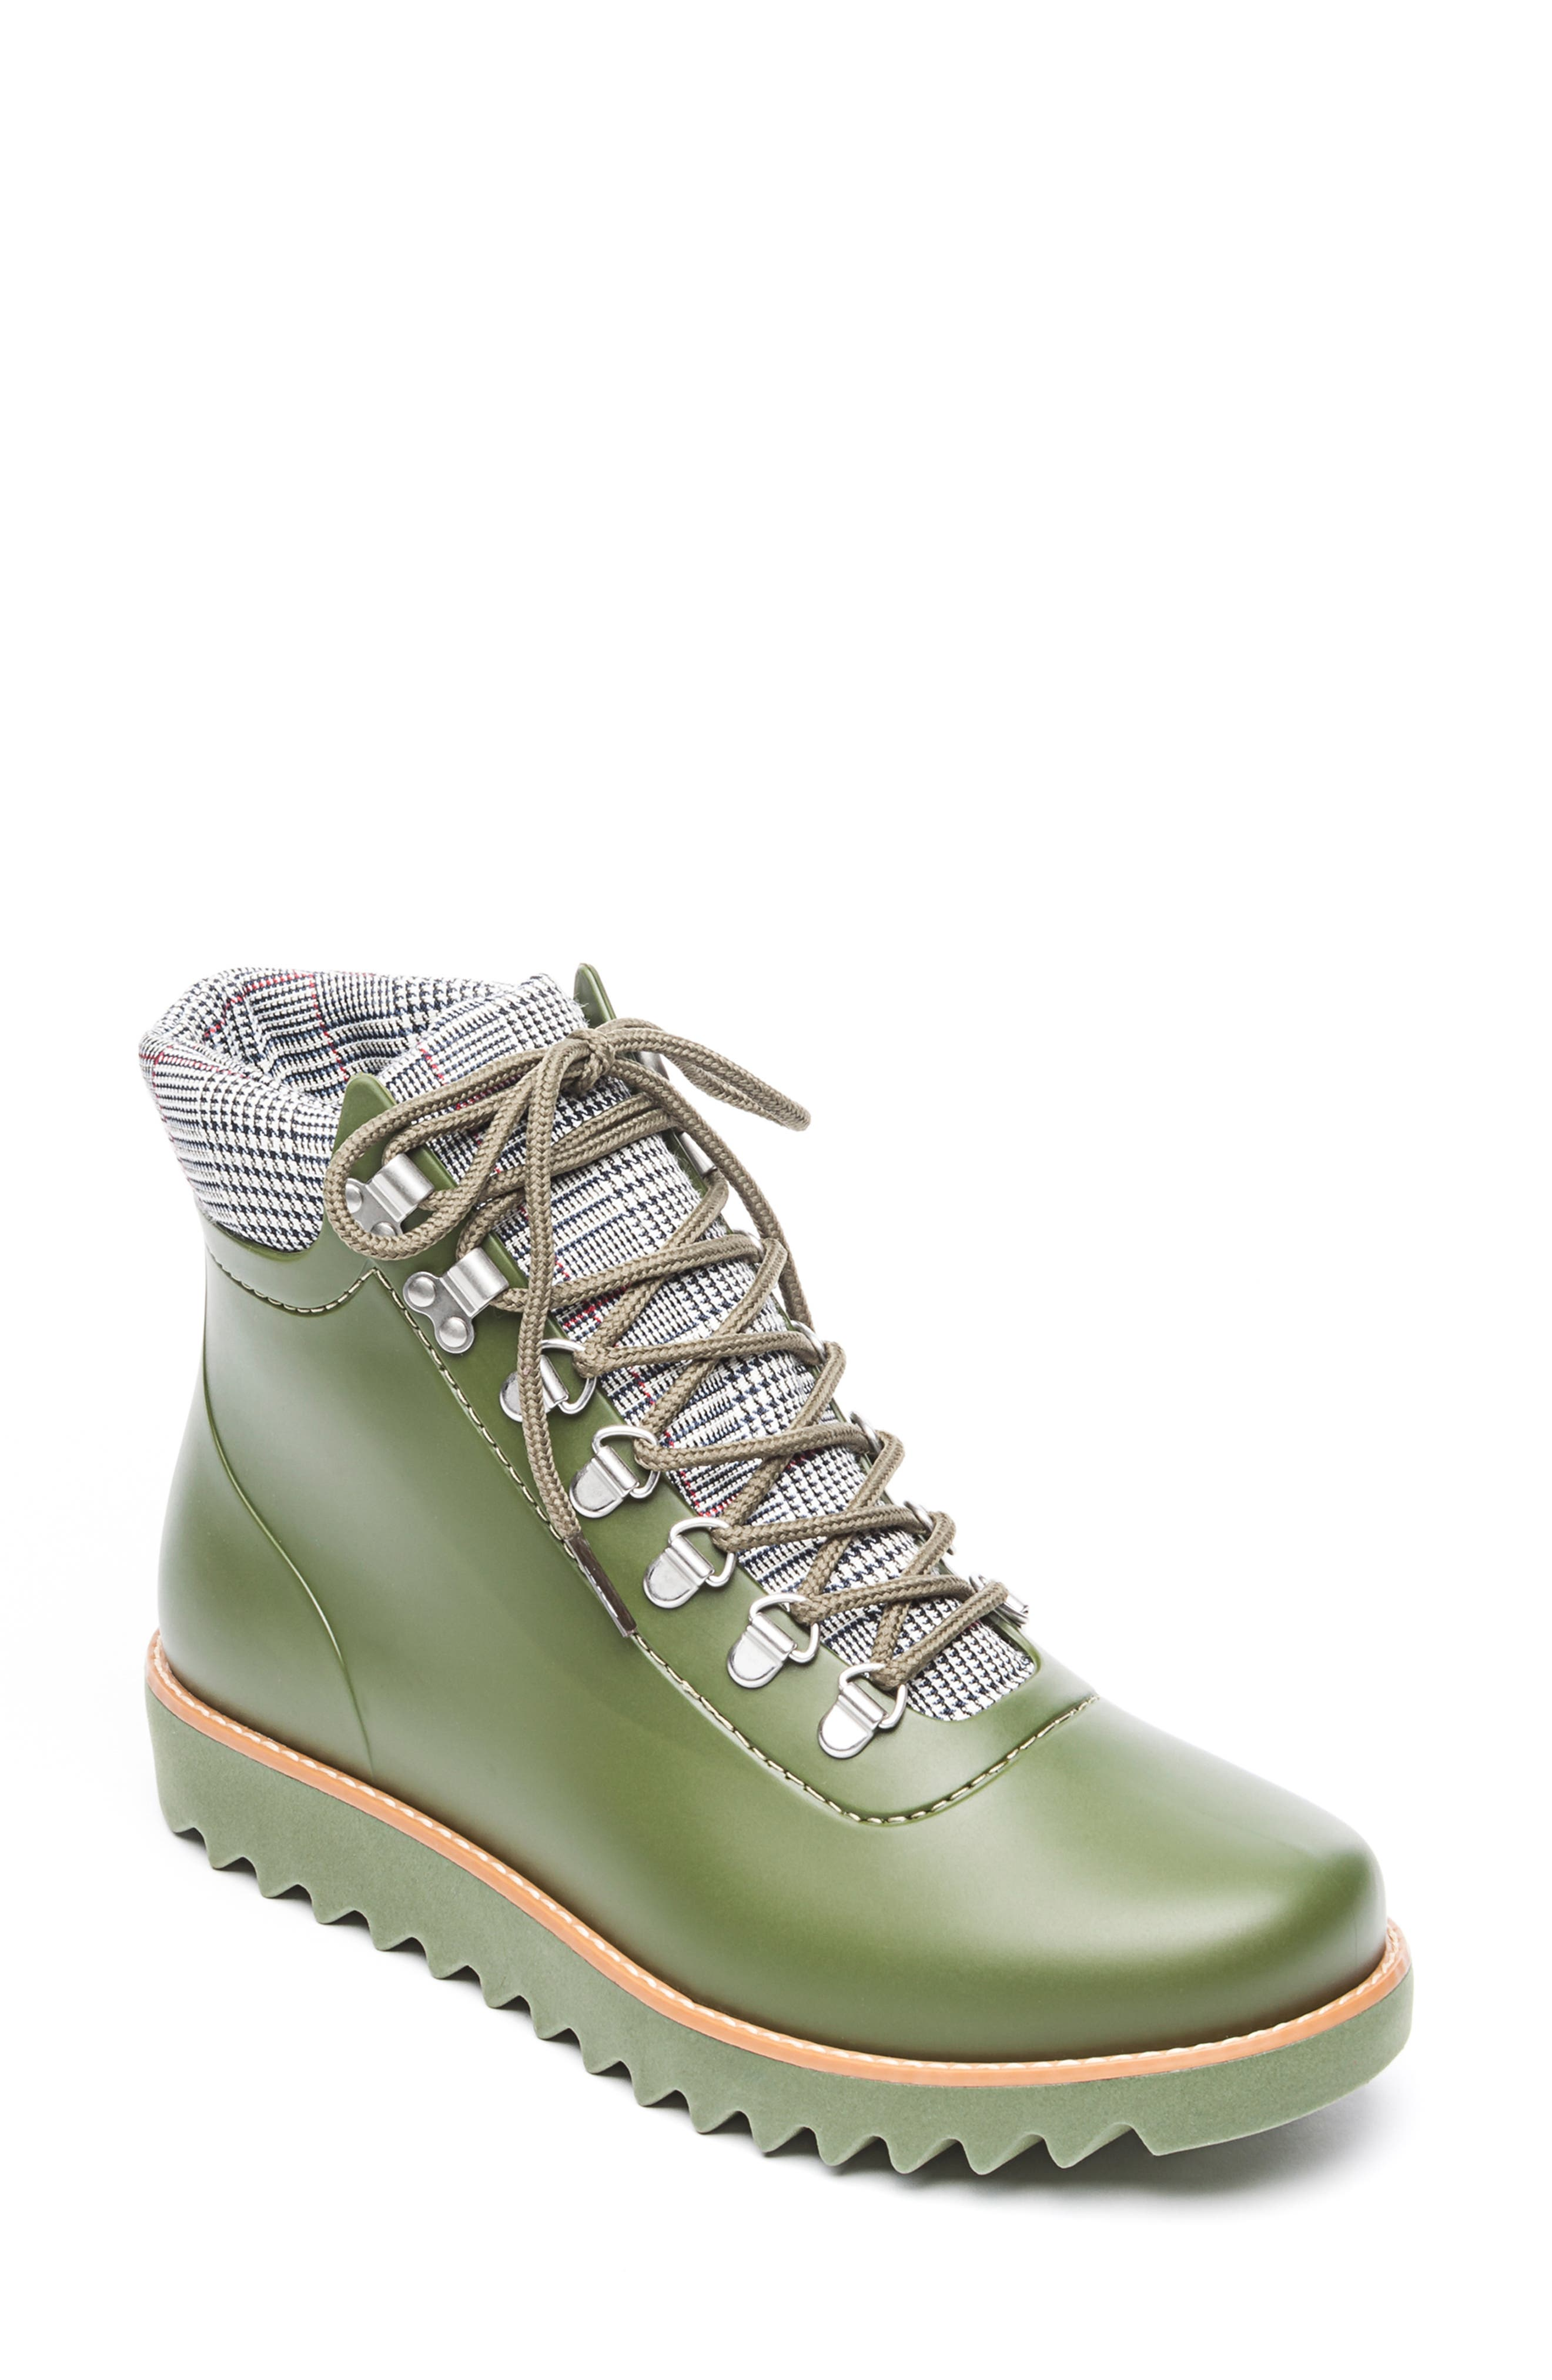 BERNARDO Winnie Waterproof Rain Bootie, Main, color, MILITARY GREEN